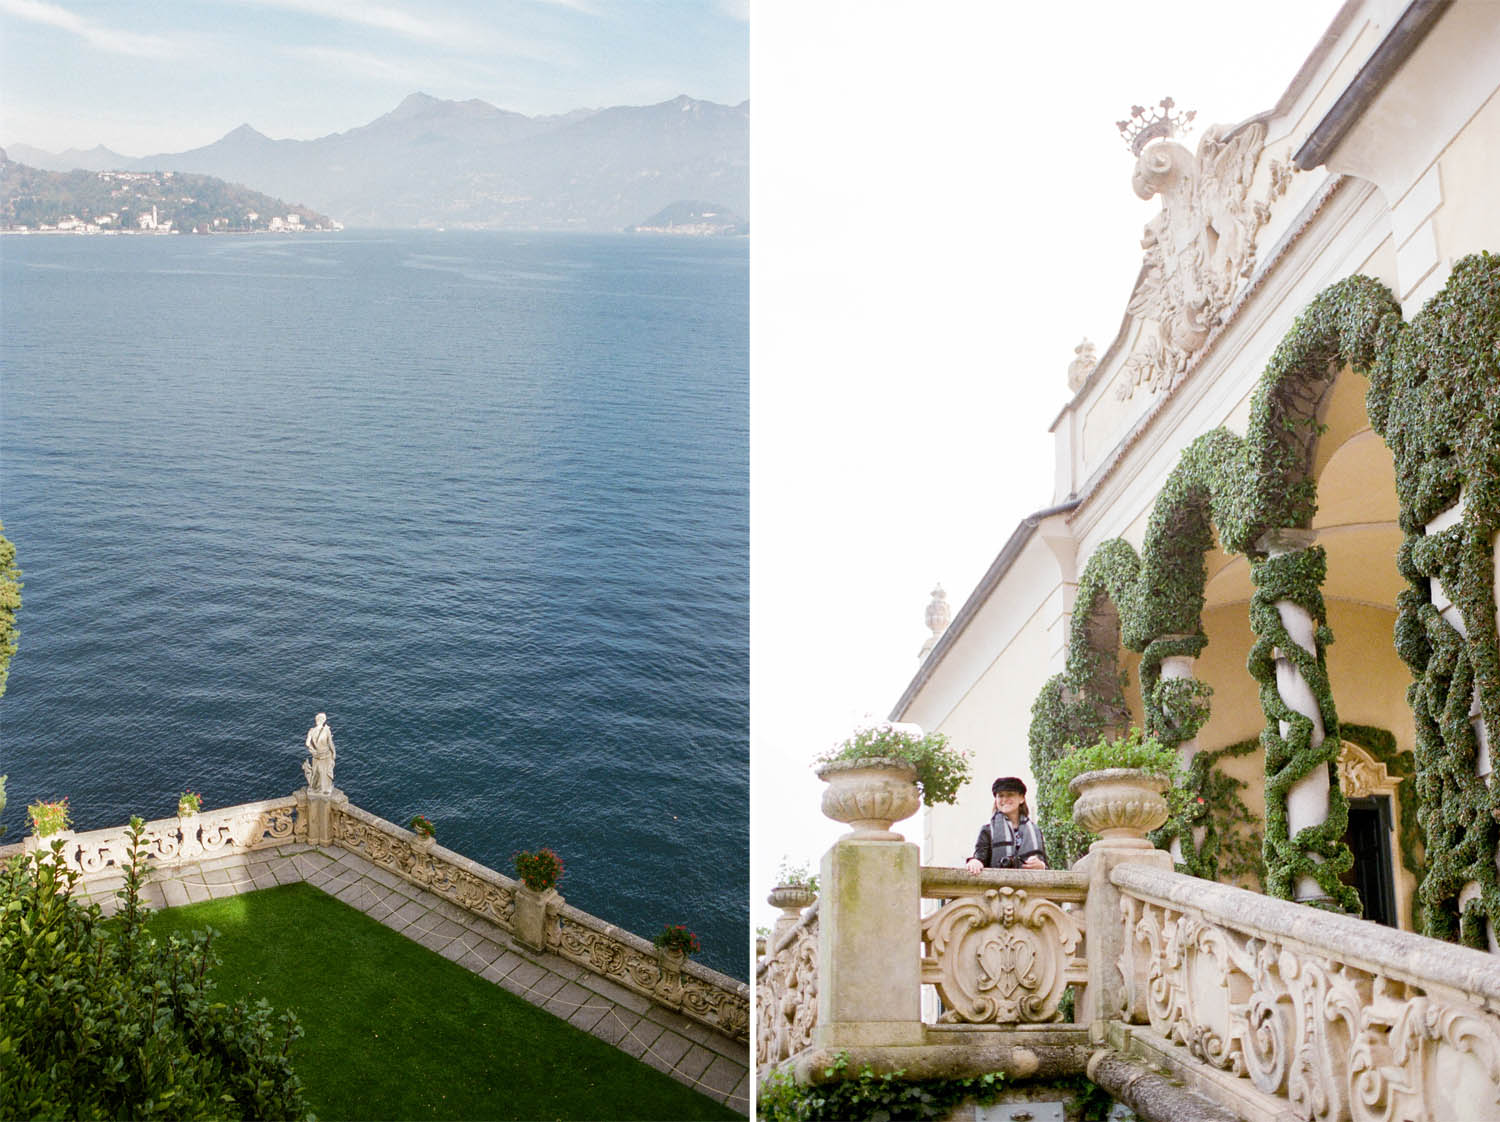 lake como villa balbianello wedding venue 06